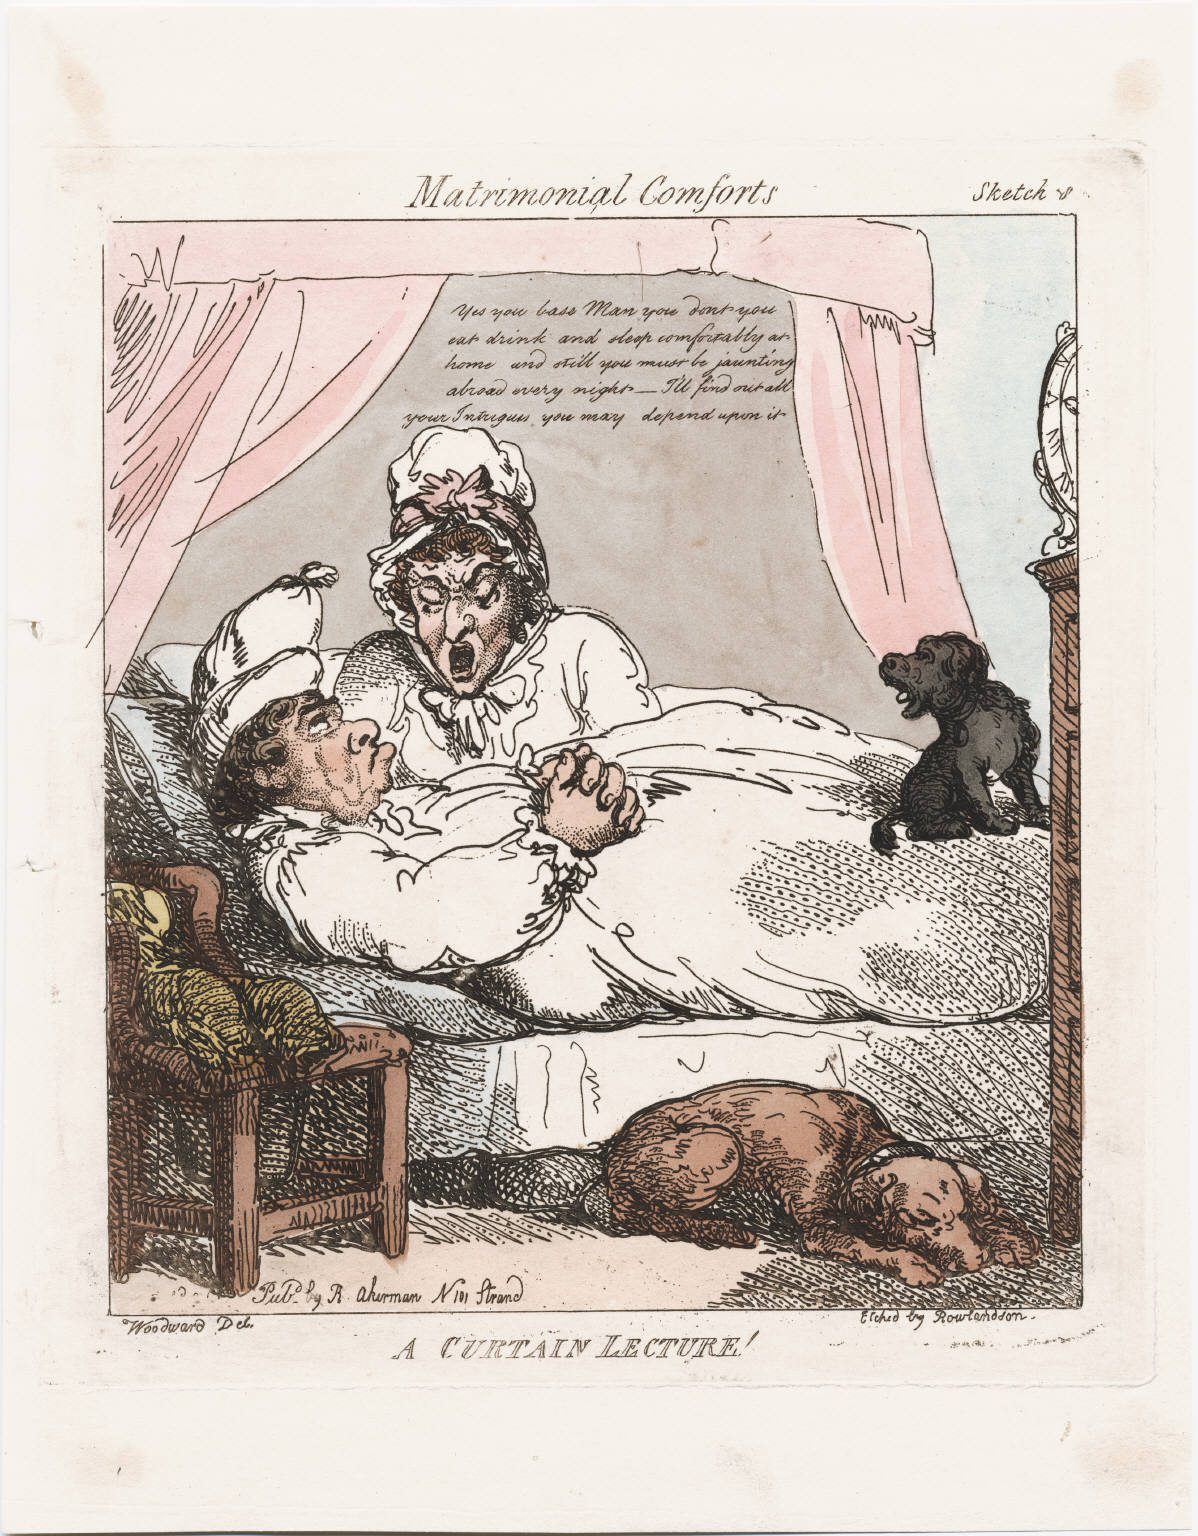 Woodward Rowlandson etched Curtain Lecture 1800  lwl